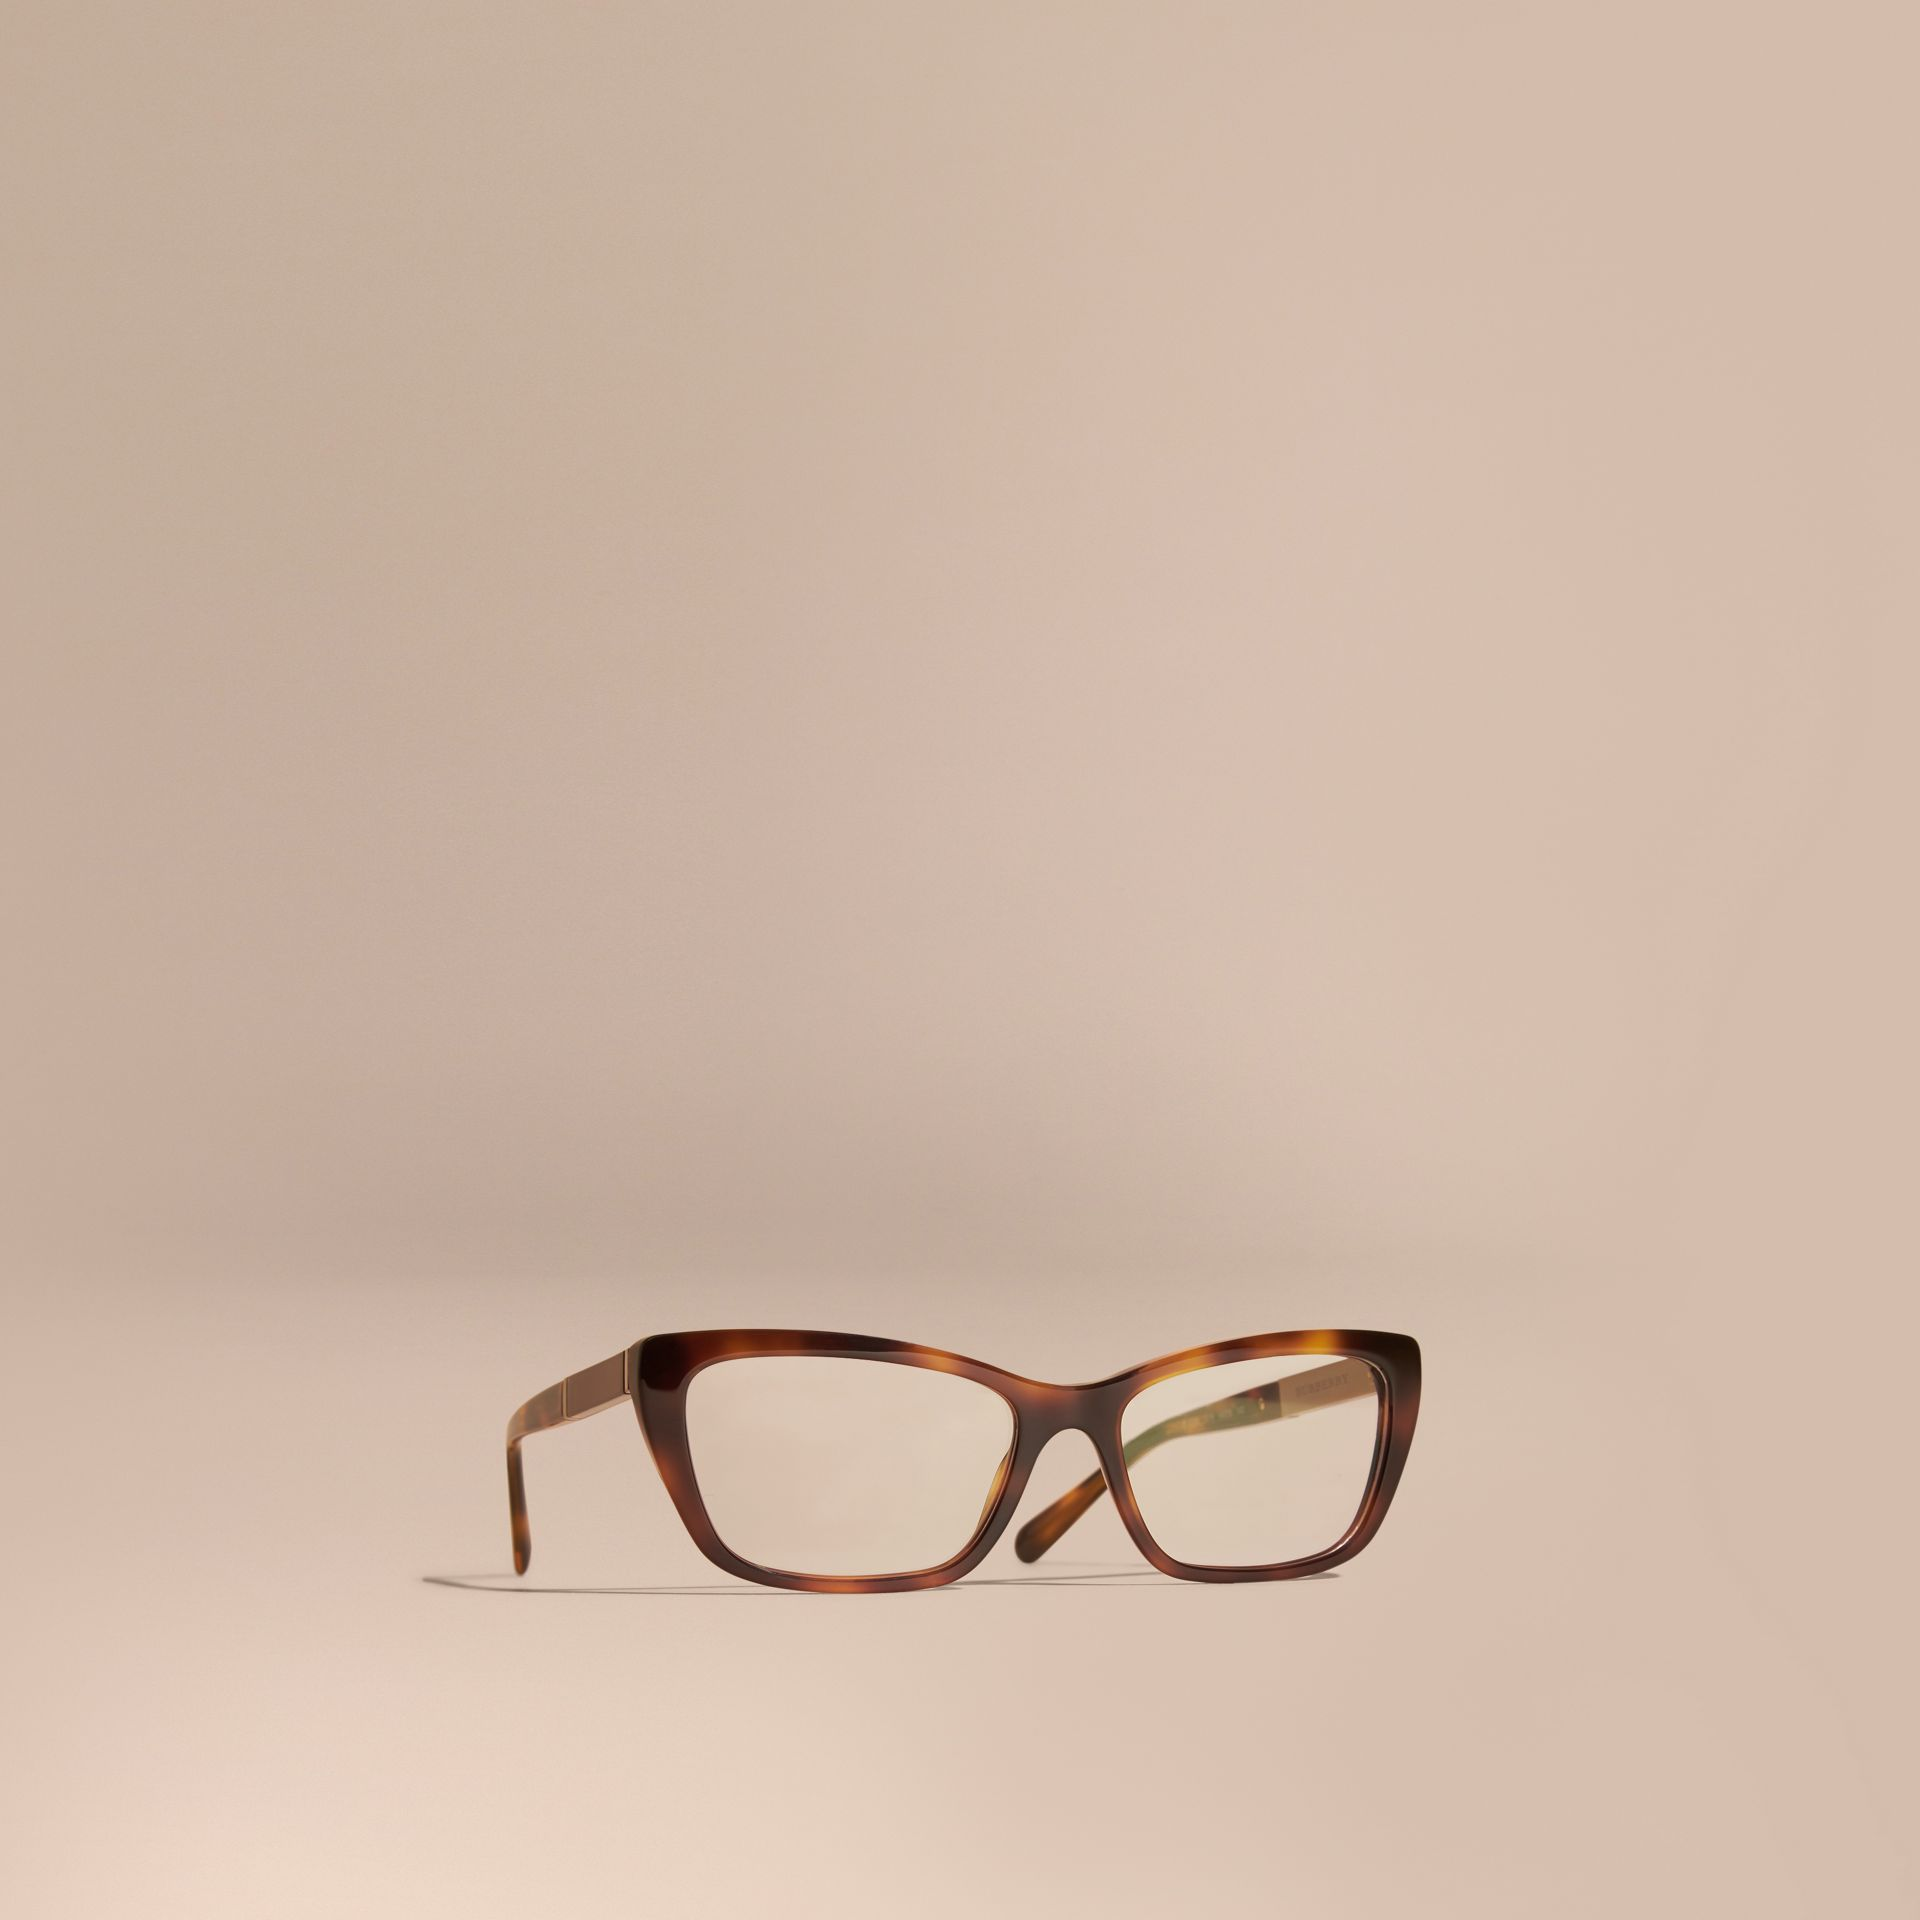 Check Detail Rectangular Cat-eye Optical Frames Light Russet Brown - gallery image 1